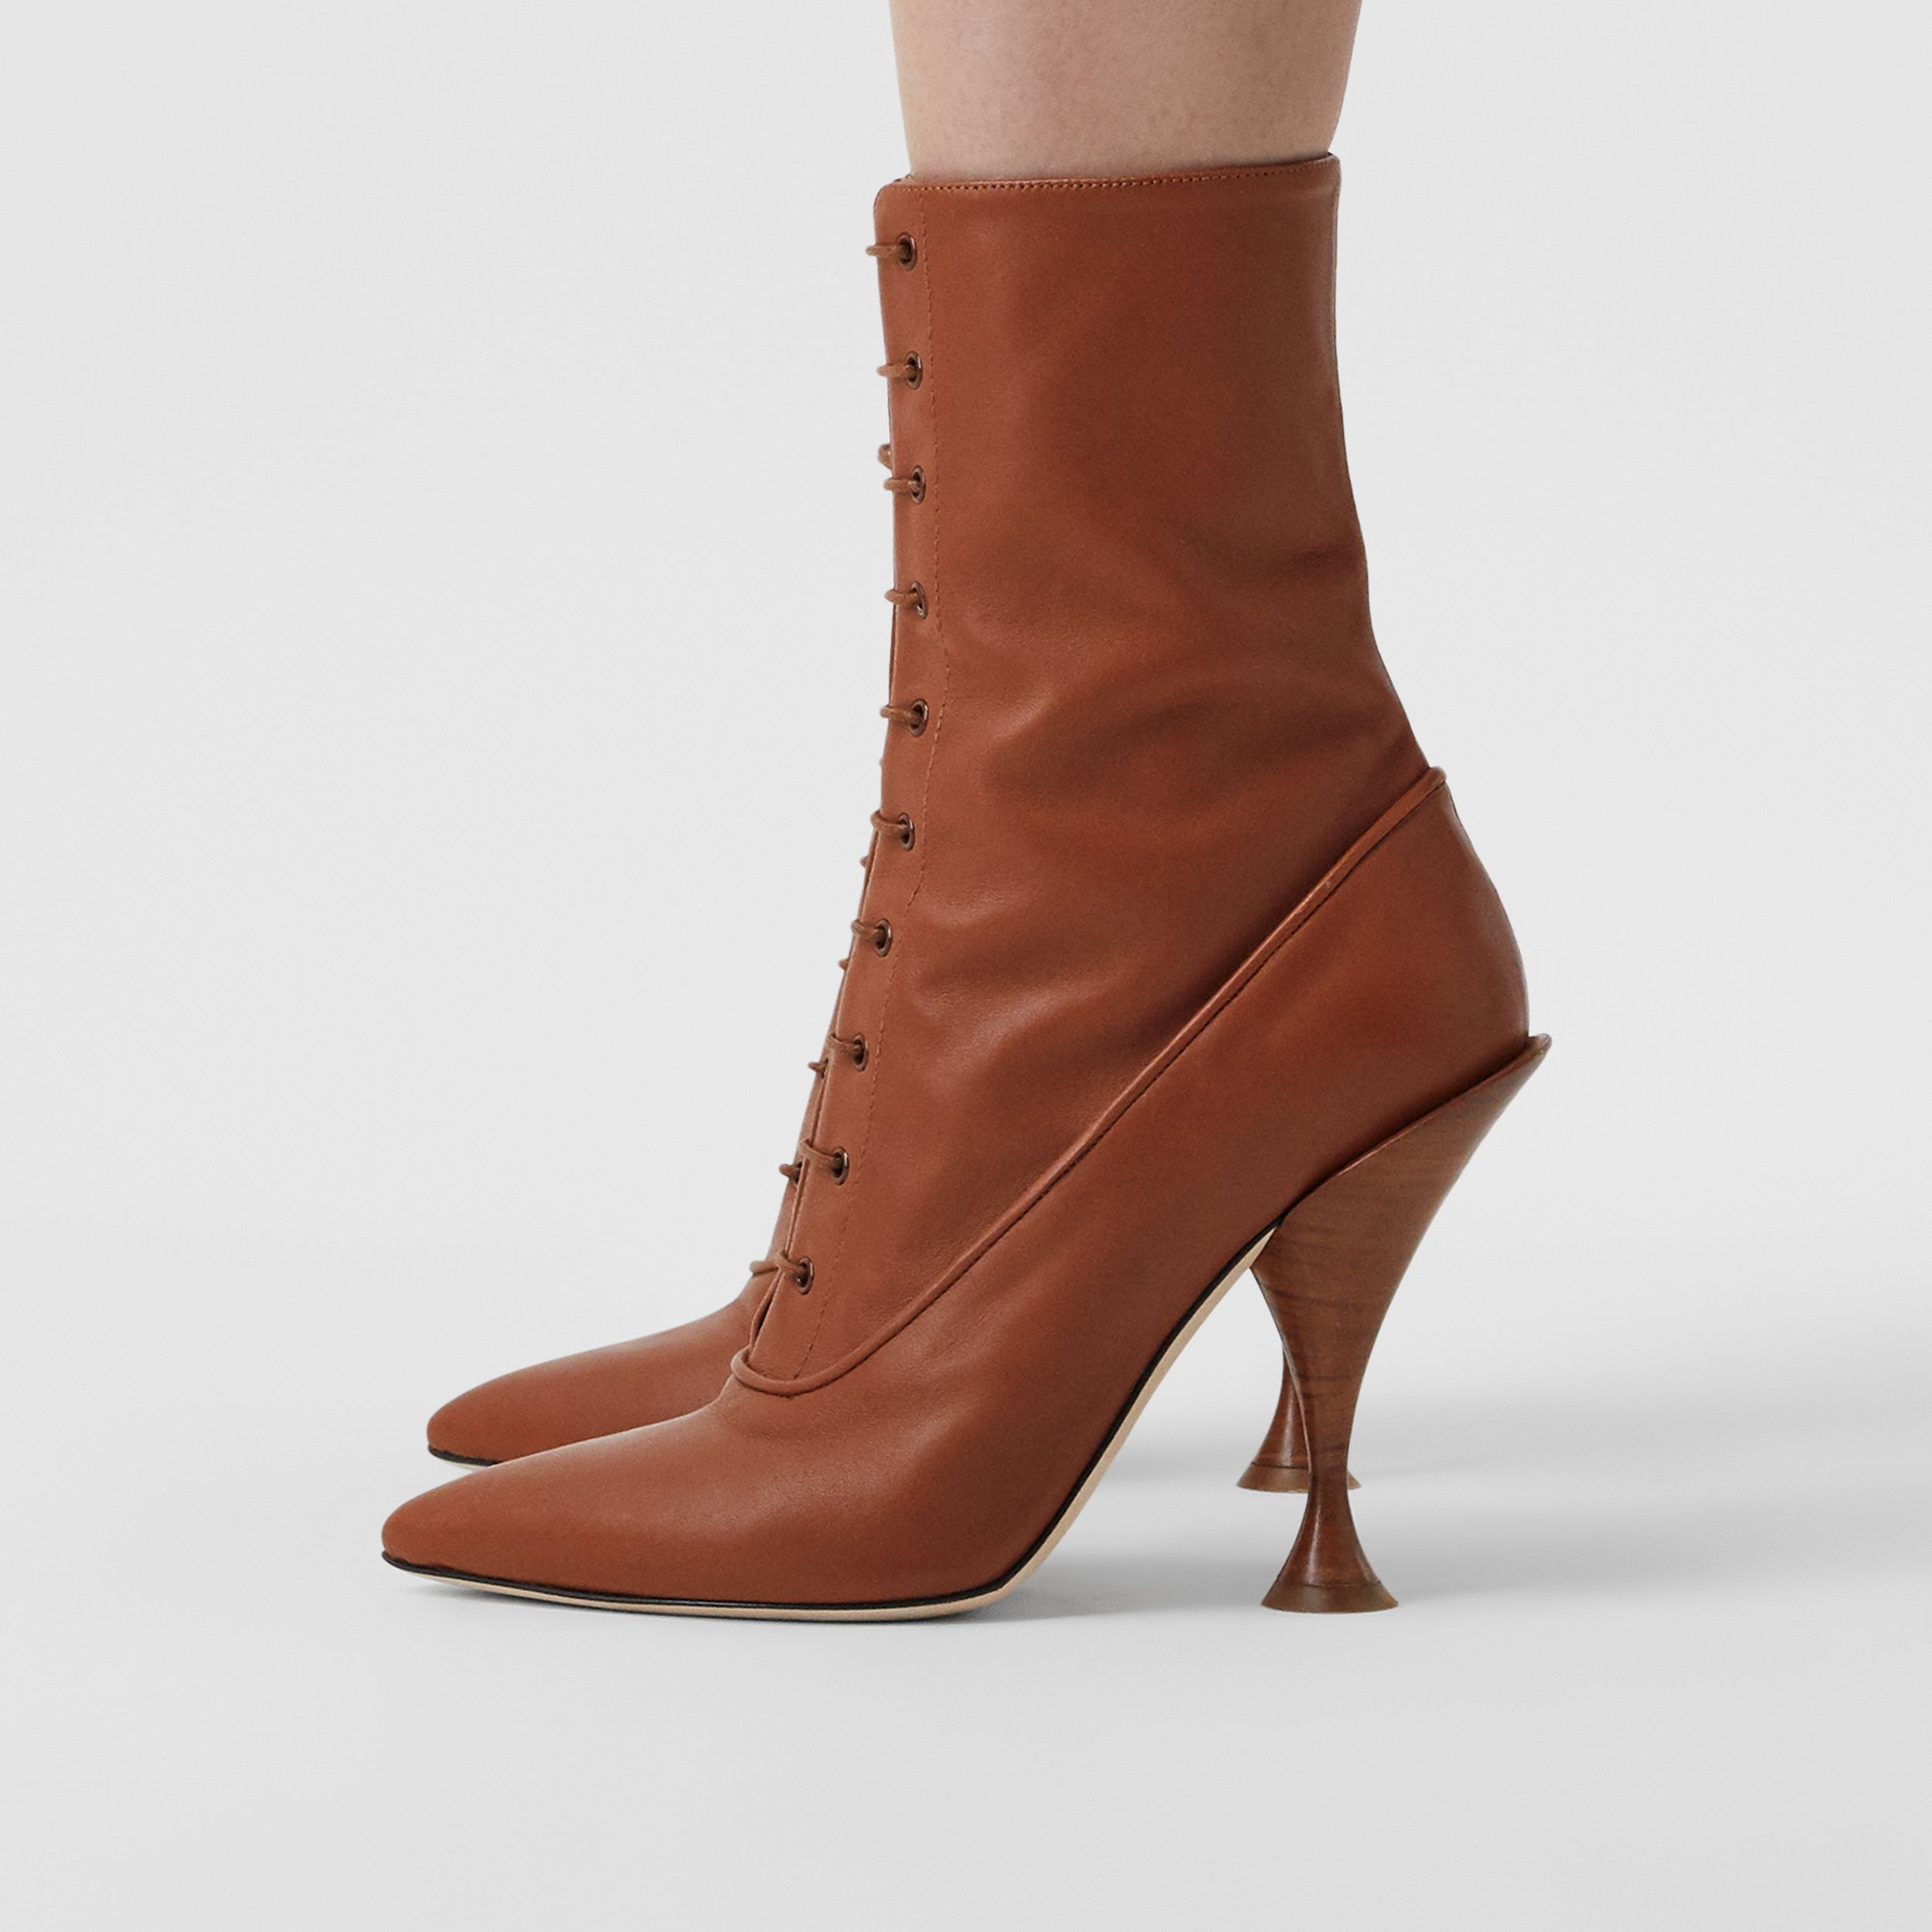 Lambskin Lace-up Ankle Boots in Tan - Women | Burberry - 3